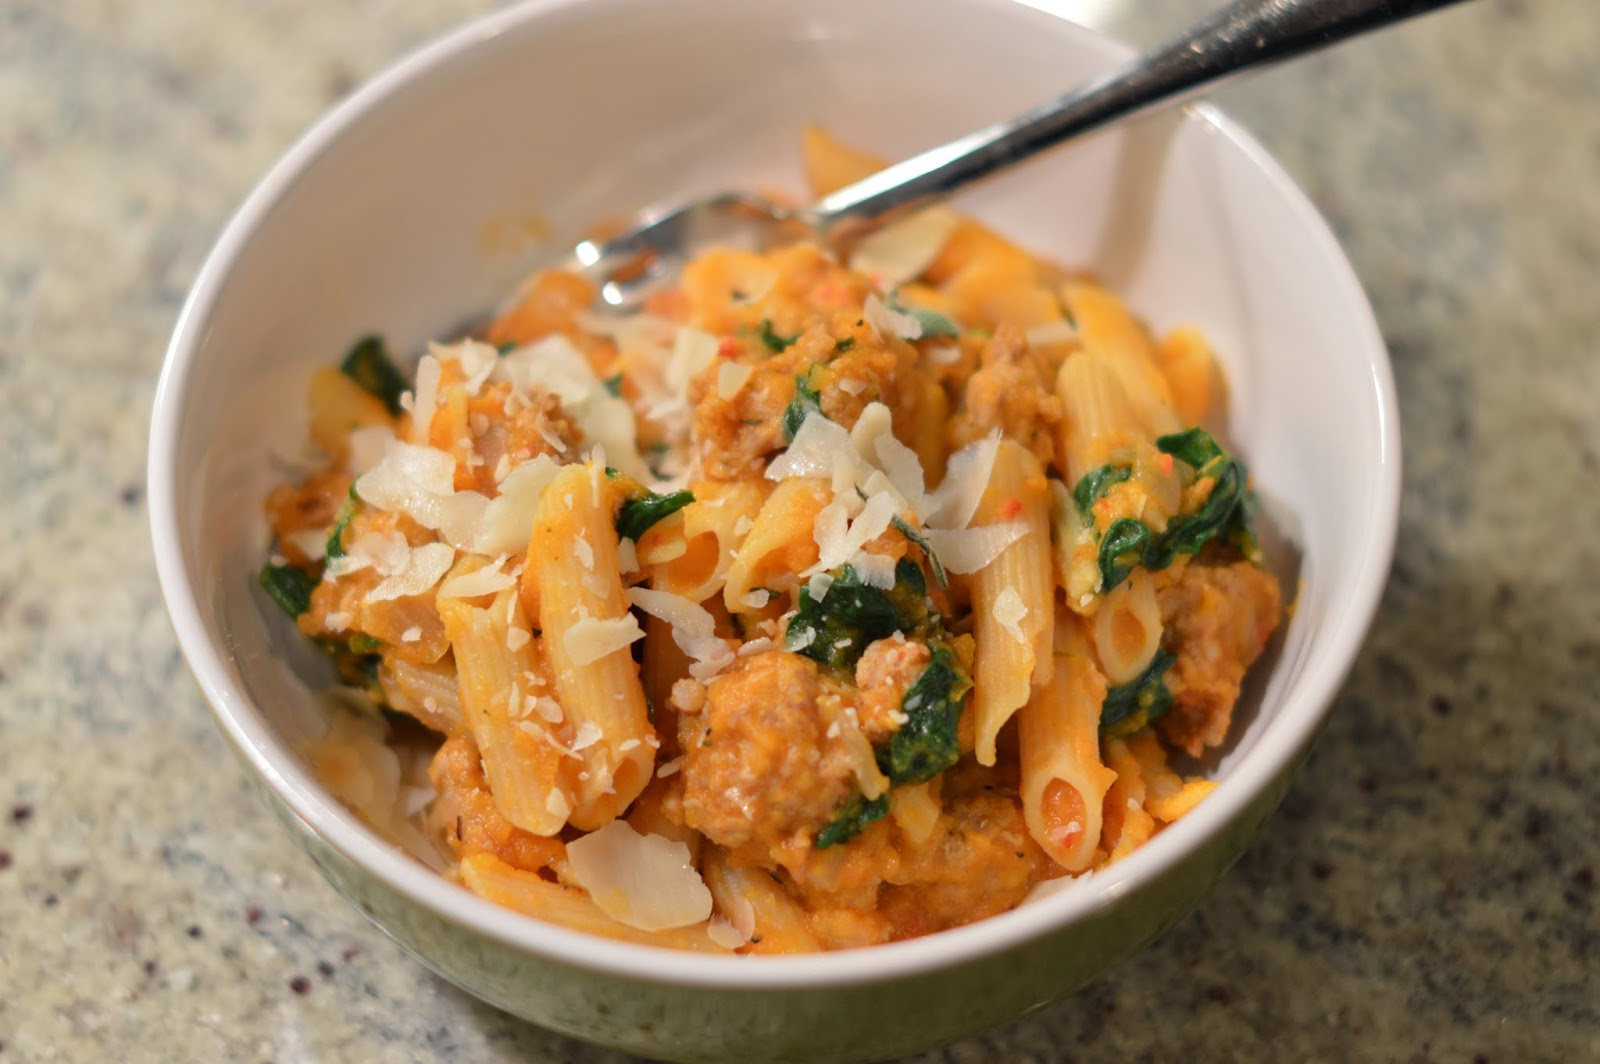 ... With My Food!: Butternut Squash, Italian Sausage, and Spinach Pasta